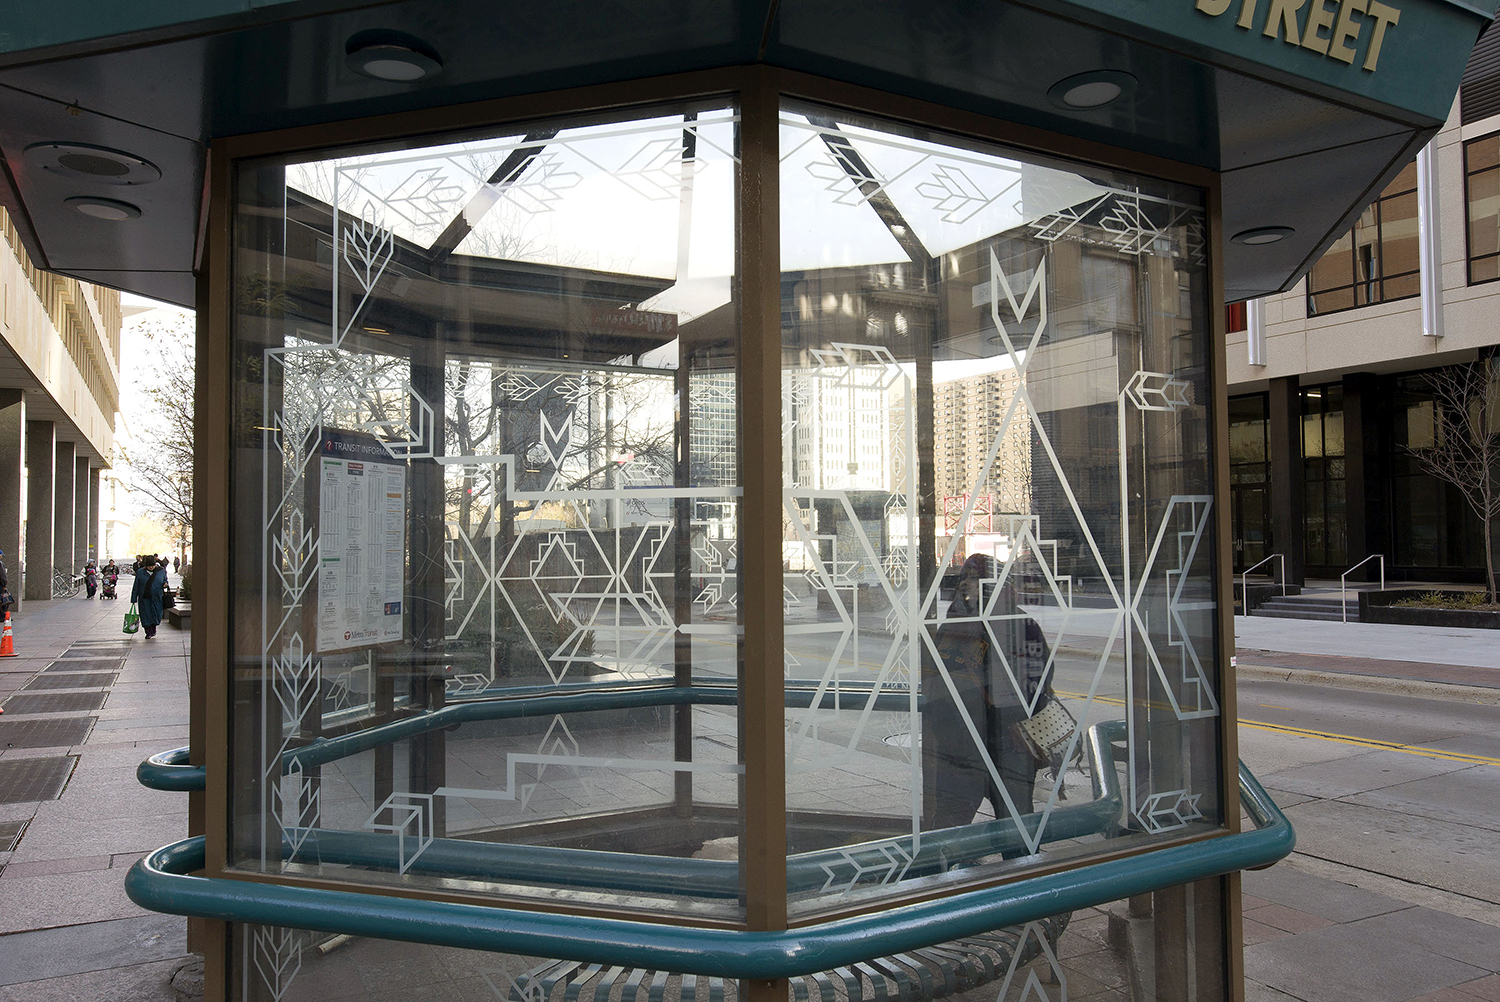 Glasswork for bus shelters by Philip Larson, 1992-2016. Photo: Jerry Mathiason.